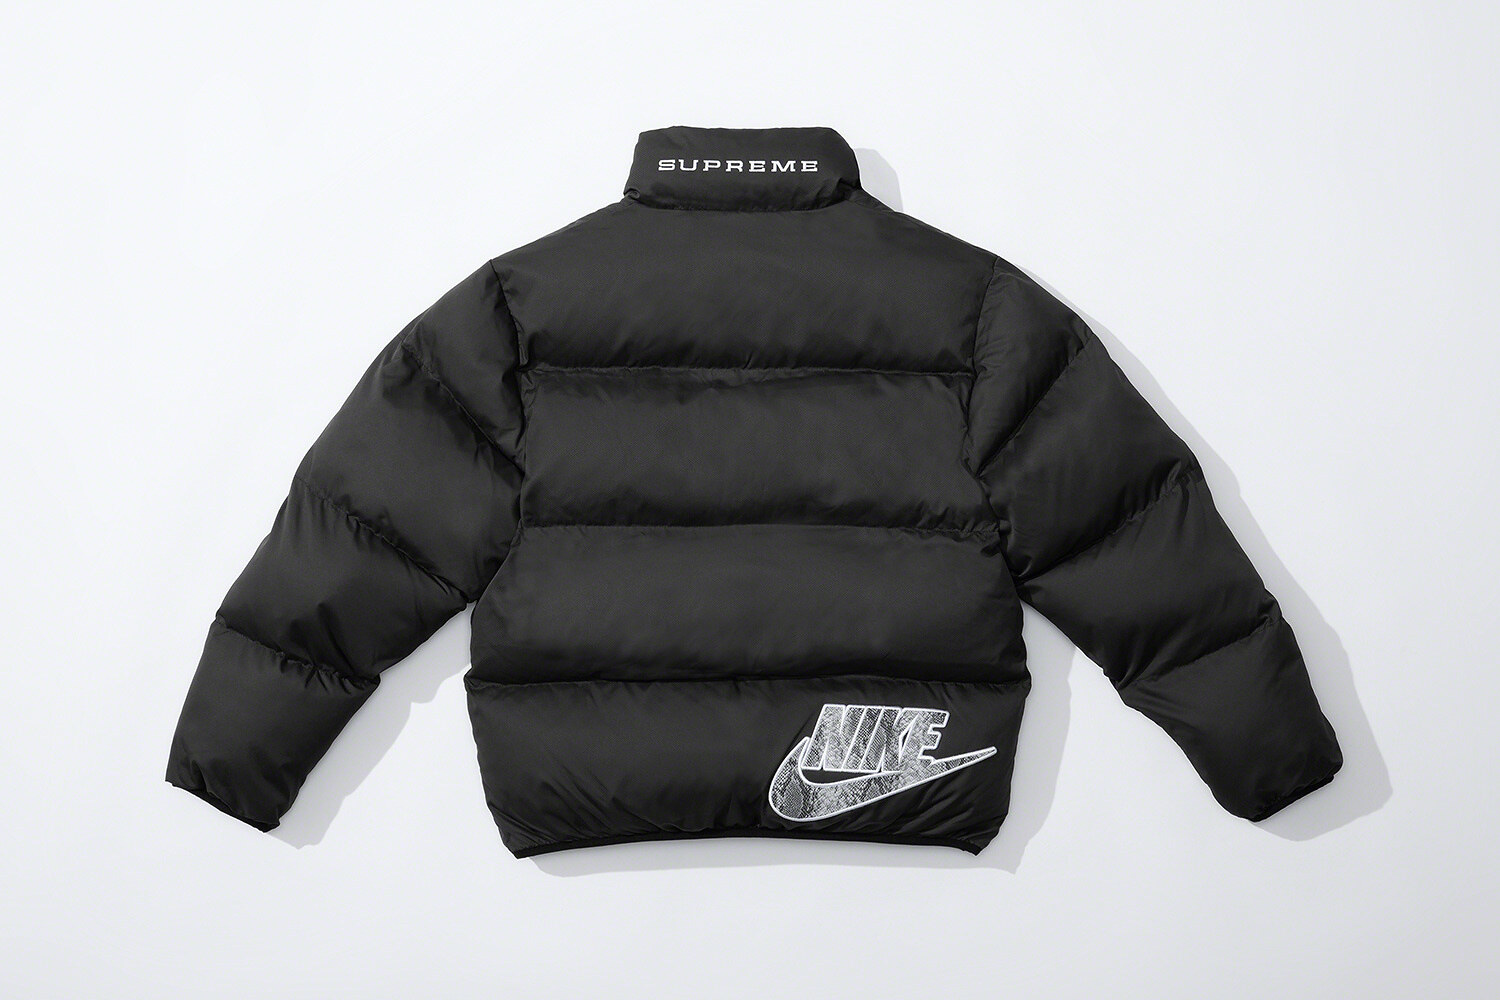 Supreme x Nike Spring/Summer 2021 collection